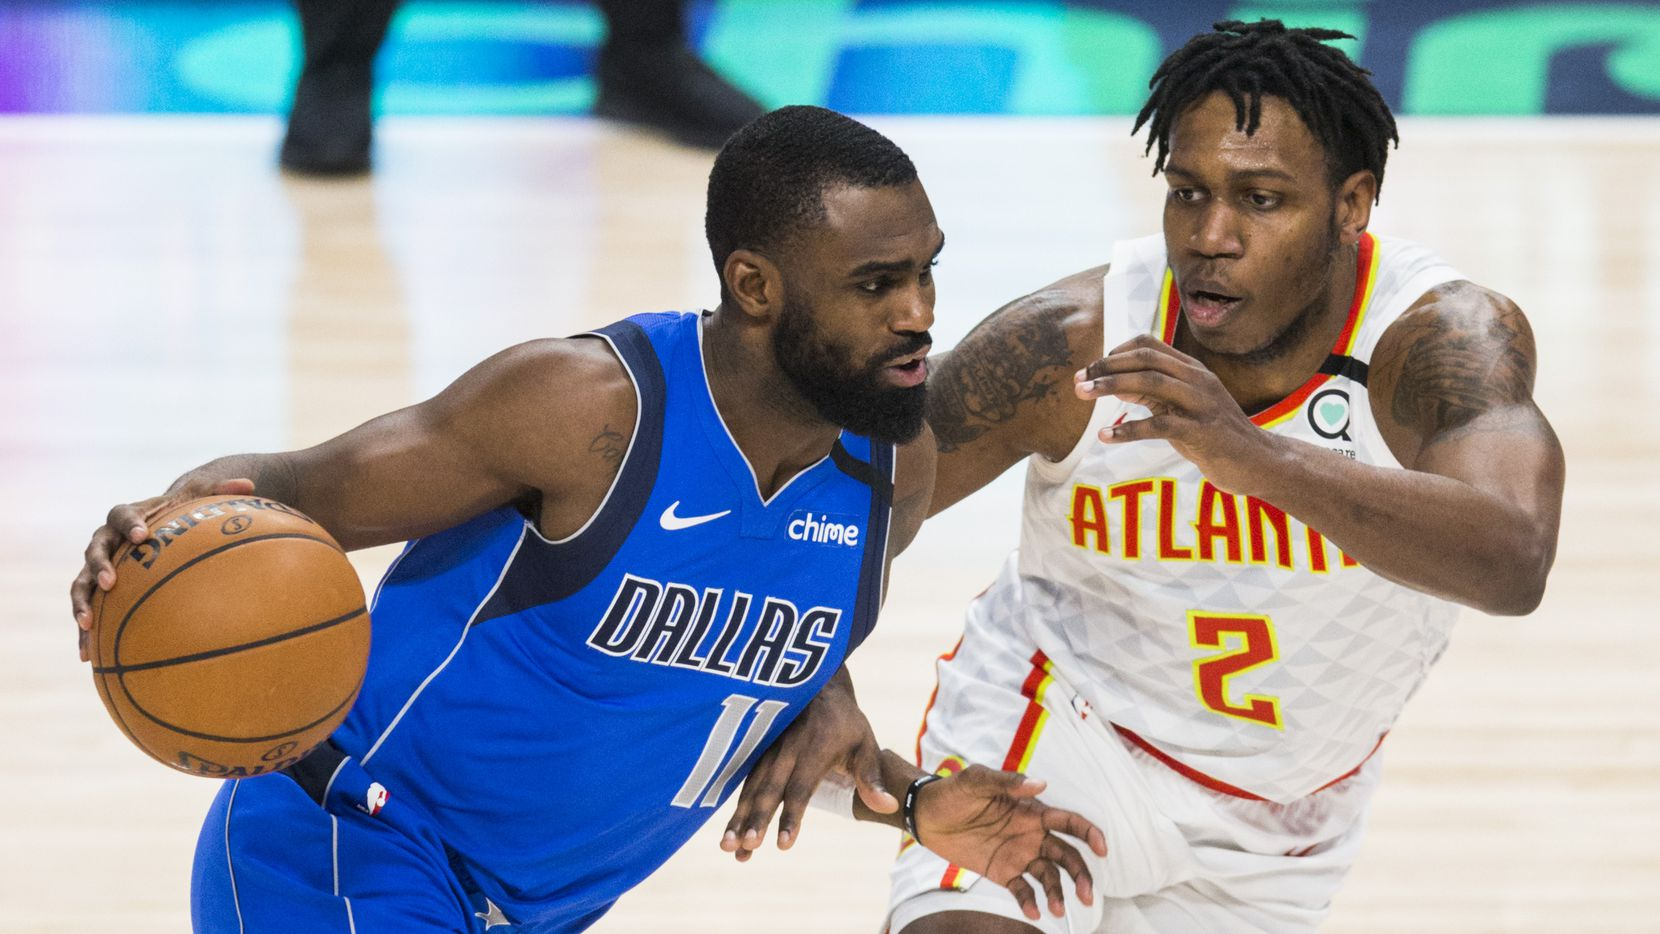 Dallas Mavericks guard Tim Hardaway Jr. (11) drives past /a2/ during the fourth quarter of an NBA game between the Dallas Mavericks and the Atlanta Hawks on Saturday, February 1, 2020 at American Airlines Center in Dallas. (Ashley Landis/The Dallas Morning News)